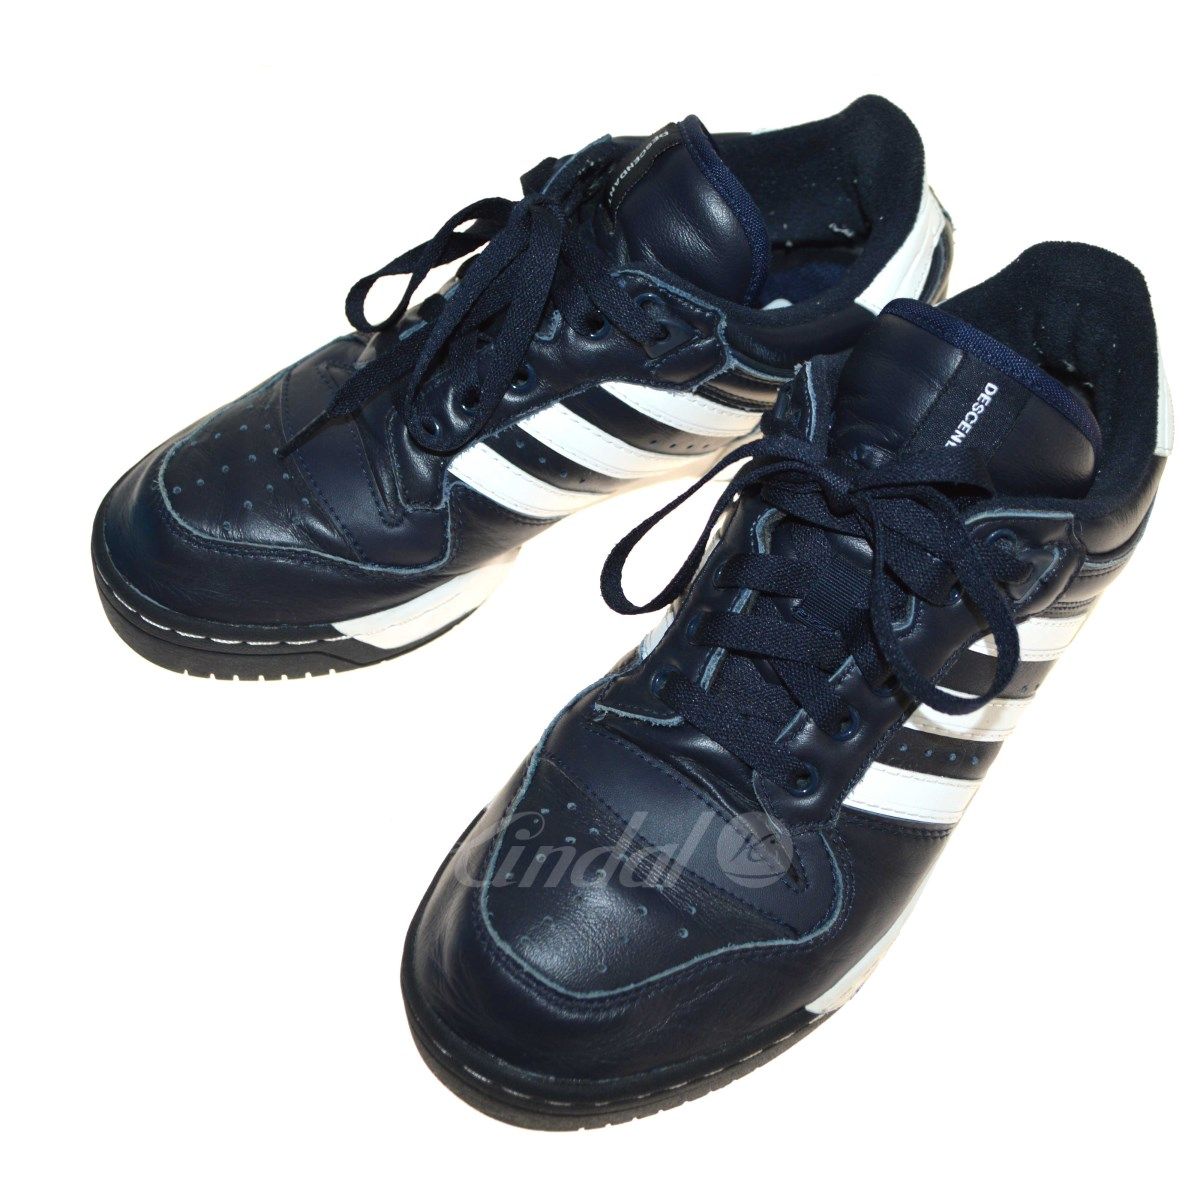 【中古】DESCENDANT 18SS ×adidas RIVILRY LO DESCENDANT スニーカー 【送料無料】 【085960】 【KIND1641】